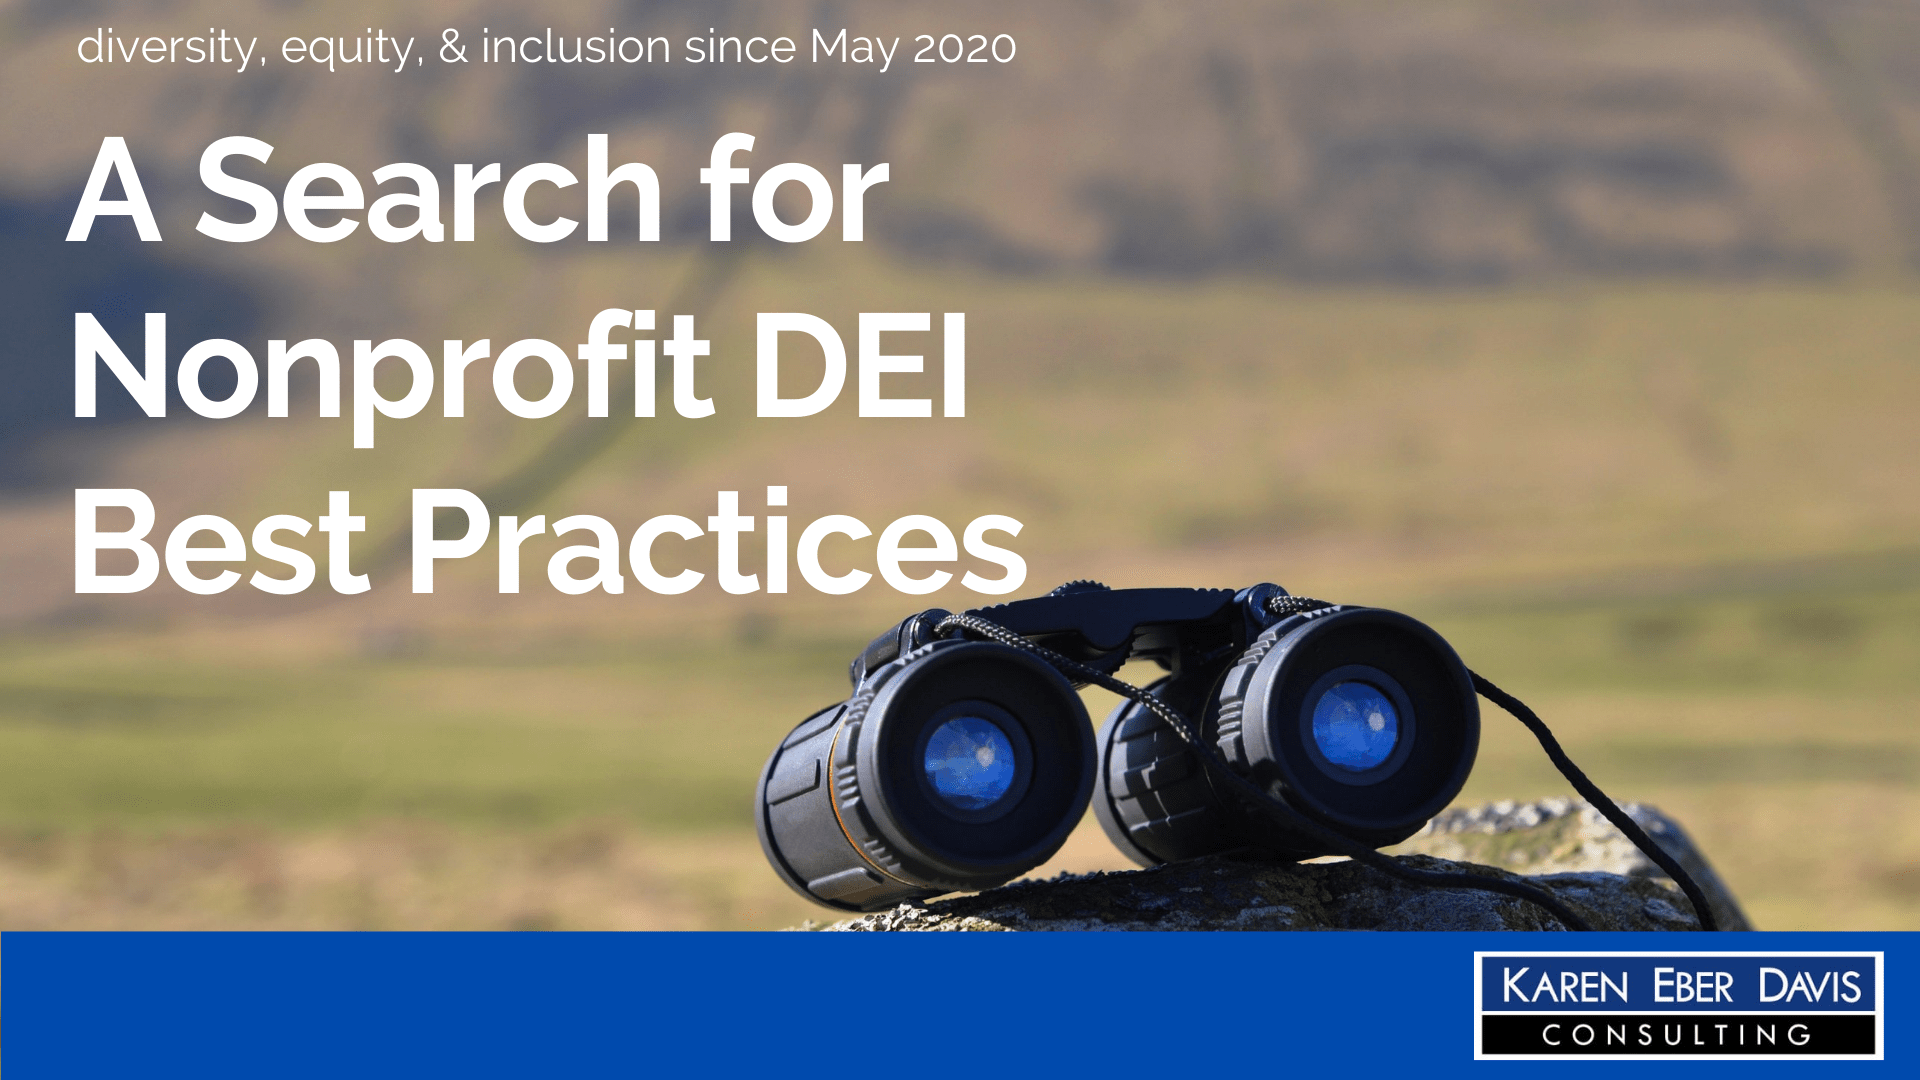 What are Nonprofits Doing with Respect to DEI?